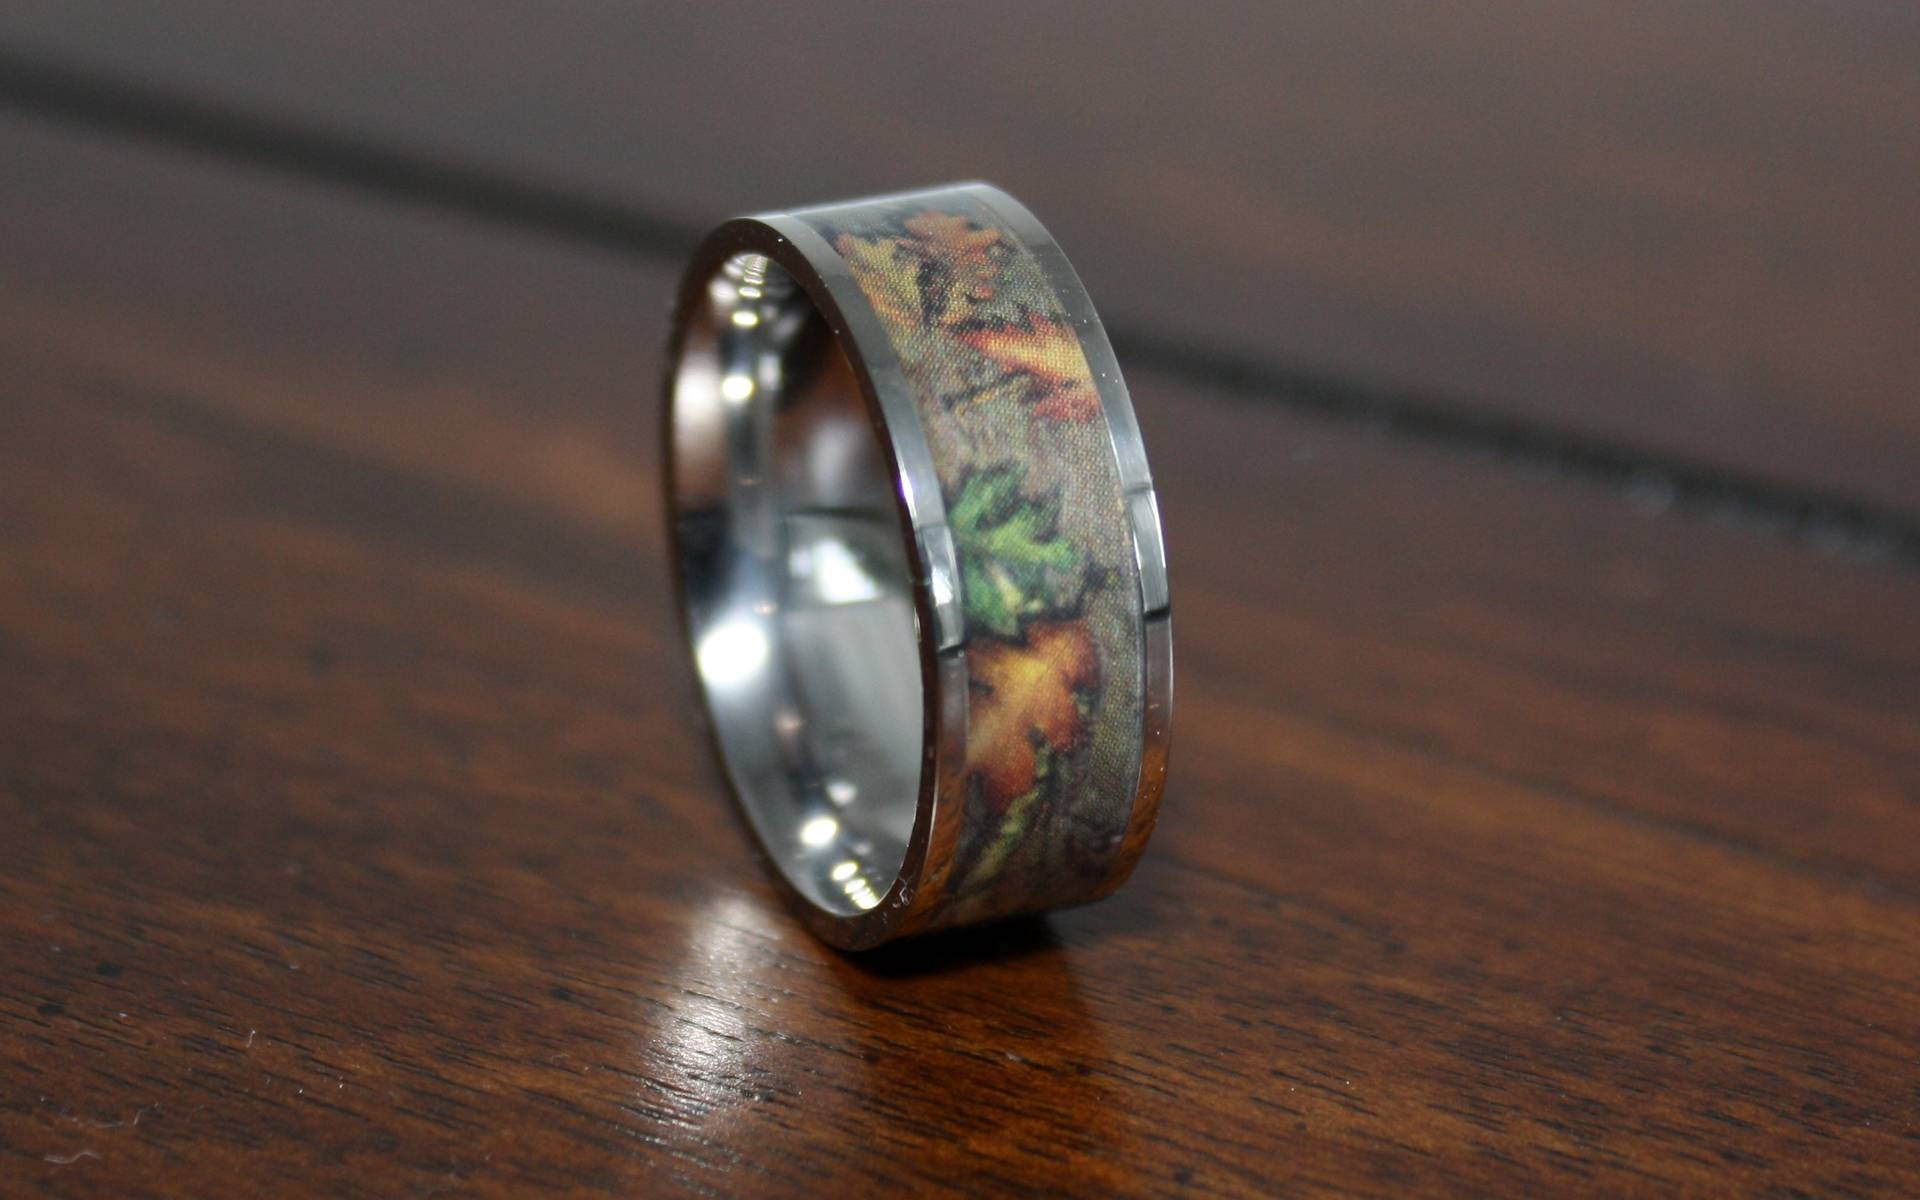 Camo Wedding Rings: Unique Wedding Ring Inspiration | Wedding Ideas Regarding Camouflage Wedding Bands For Him (View 12 of 15)